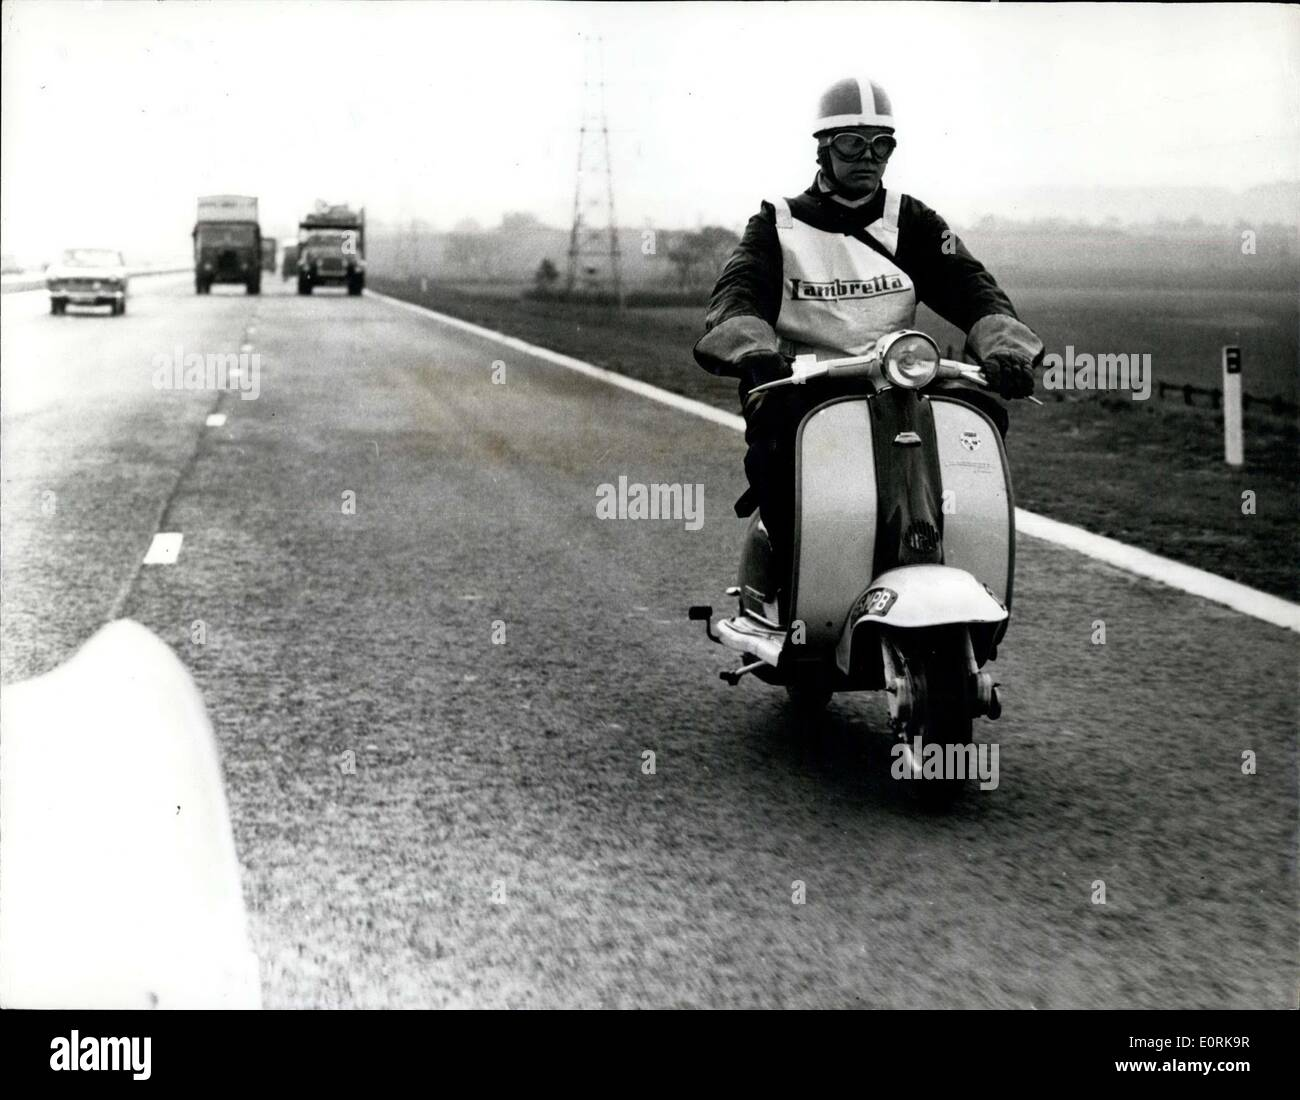 Nov. 02, 1959 - Lambretta covers 142 miles in 143 minutes on the new motorway: Brian Gibbs, works rider for Lambretta, took a spare part to the Birmingham and of the new motorway opened todya the M.1 from Luton Spur, where the opening took place and returned after refuelling to the St. Albans' and of the M.1. He covered the total of 142 miles in 143 minutes. Photo shows Brian Gibbs seen riding the Lambretta to Birmingham on the M.1. today. - Stock Image